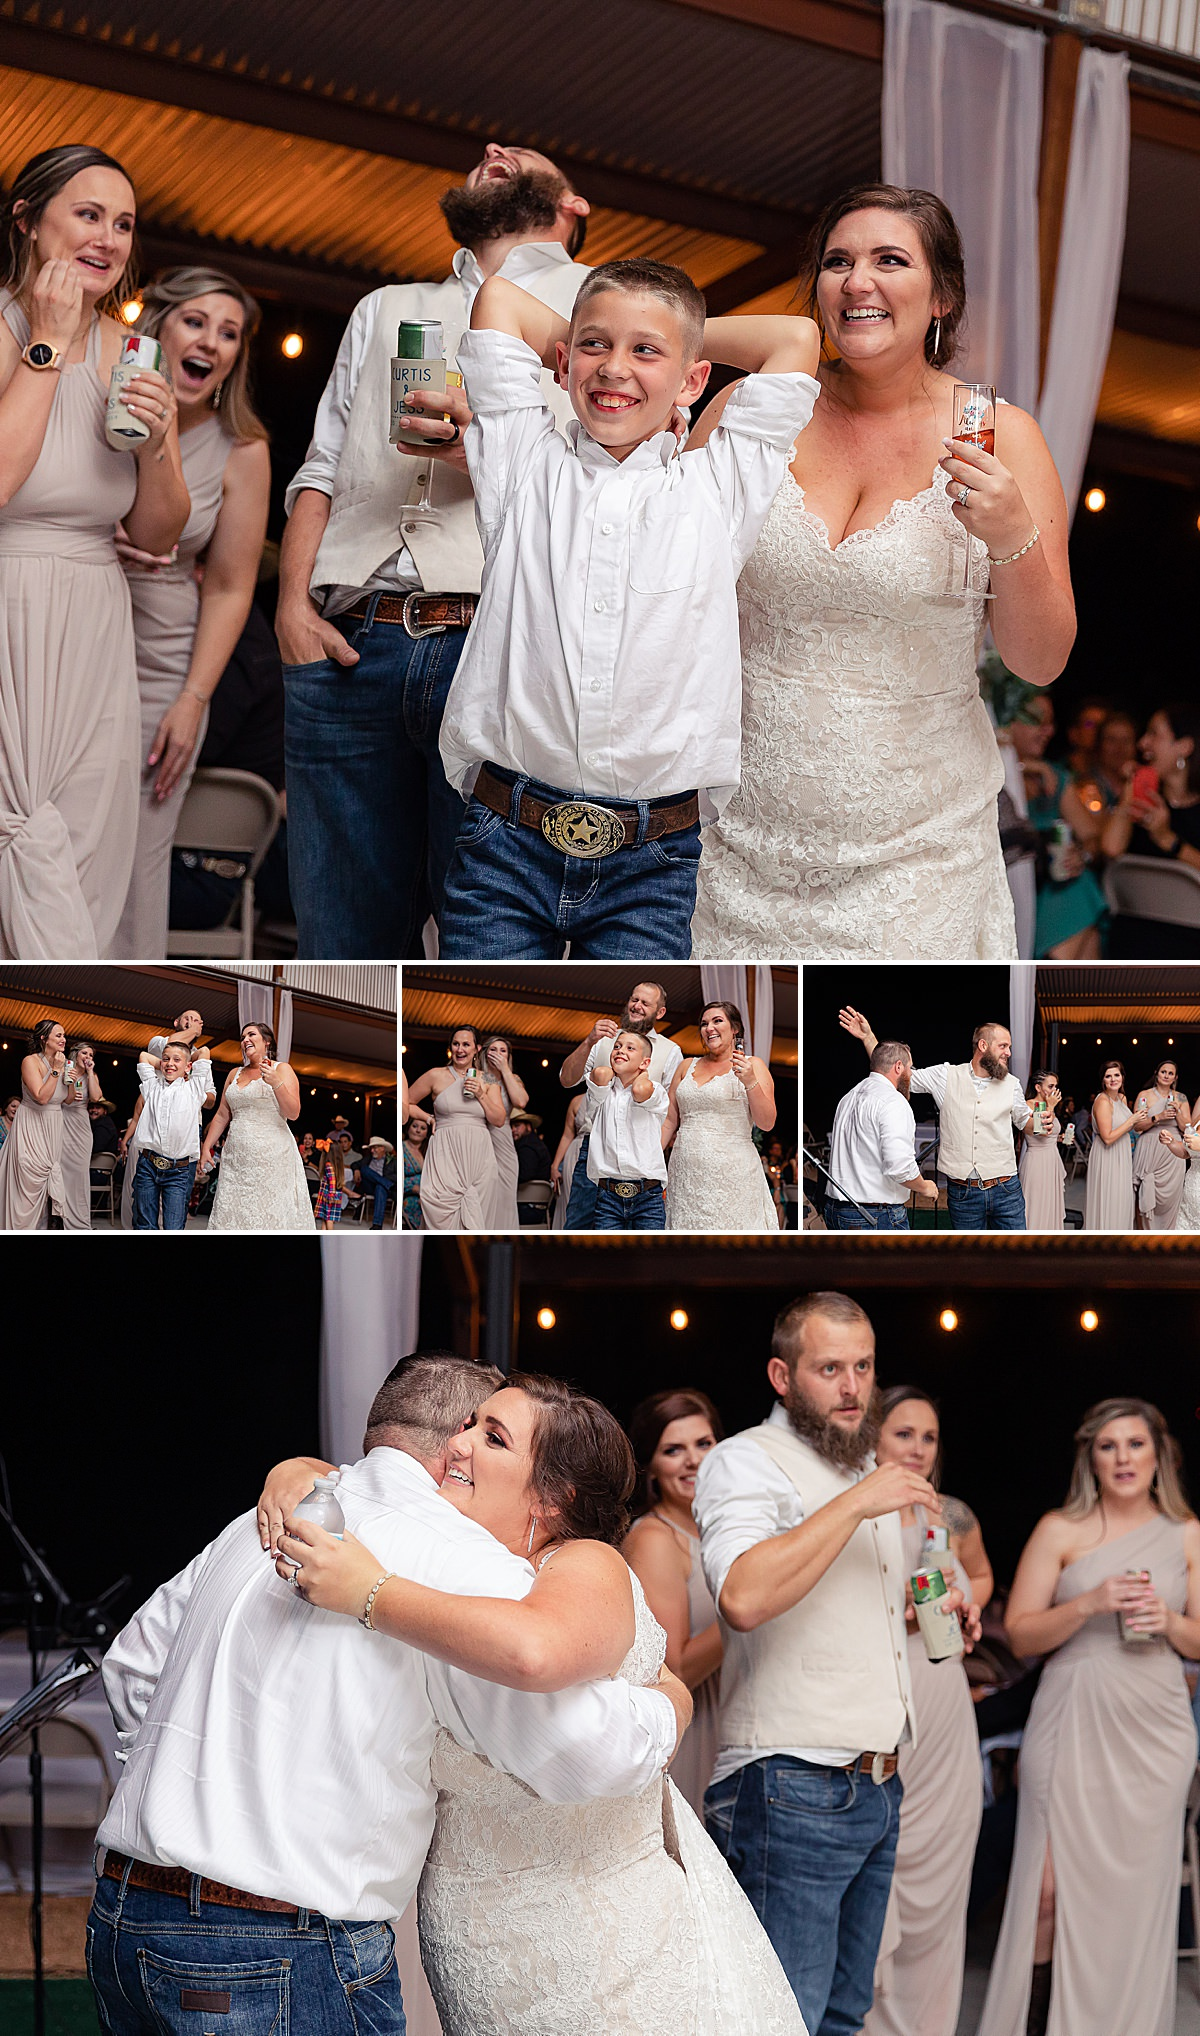 Rustic-Texas-Wedding-Hollow-Creek-Ranch-Carly-Barton-Photography_0015.jpg